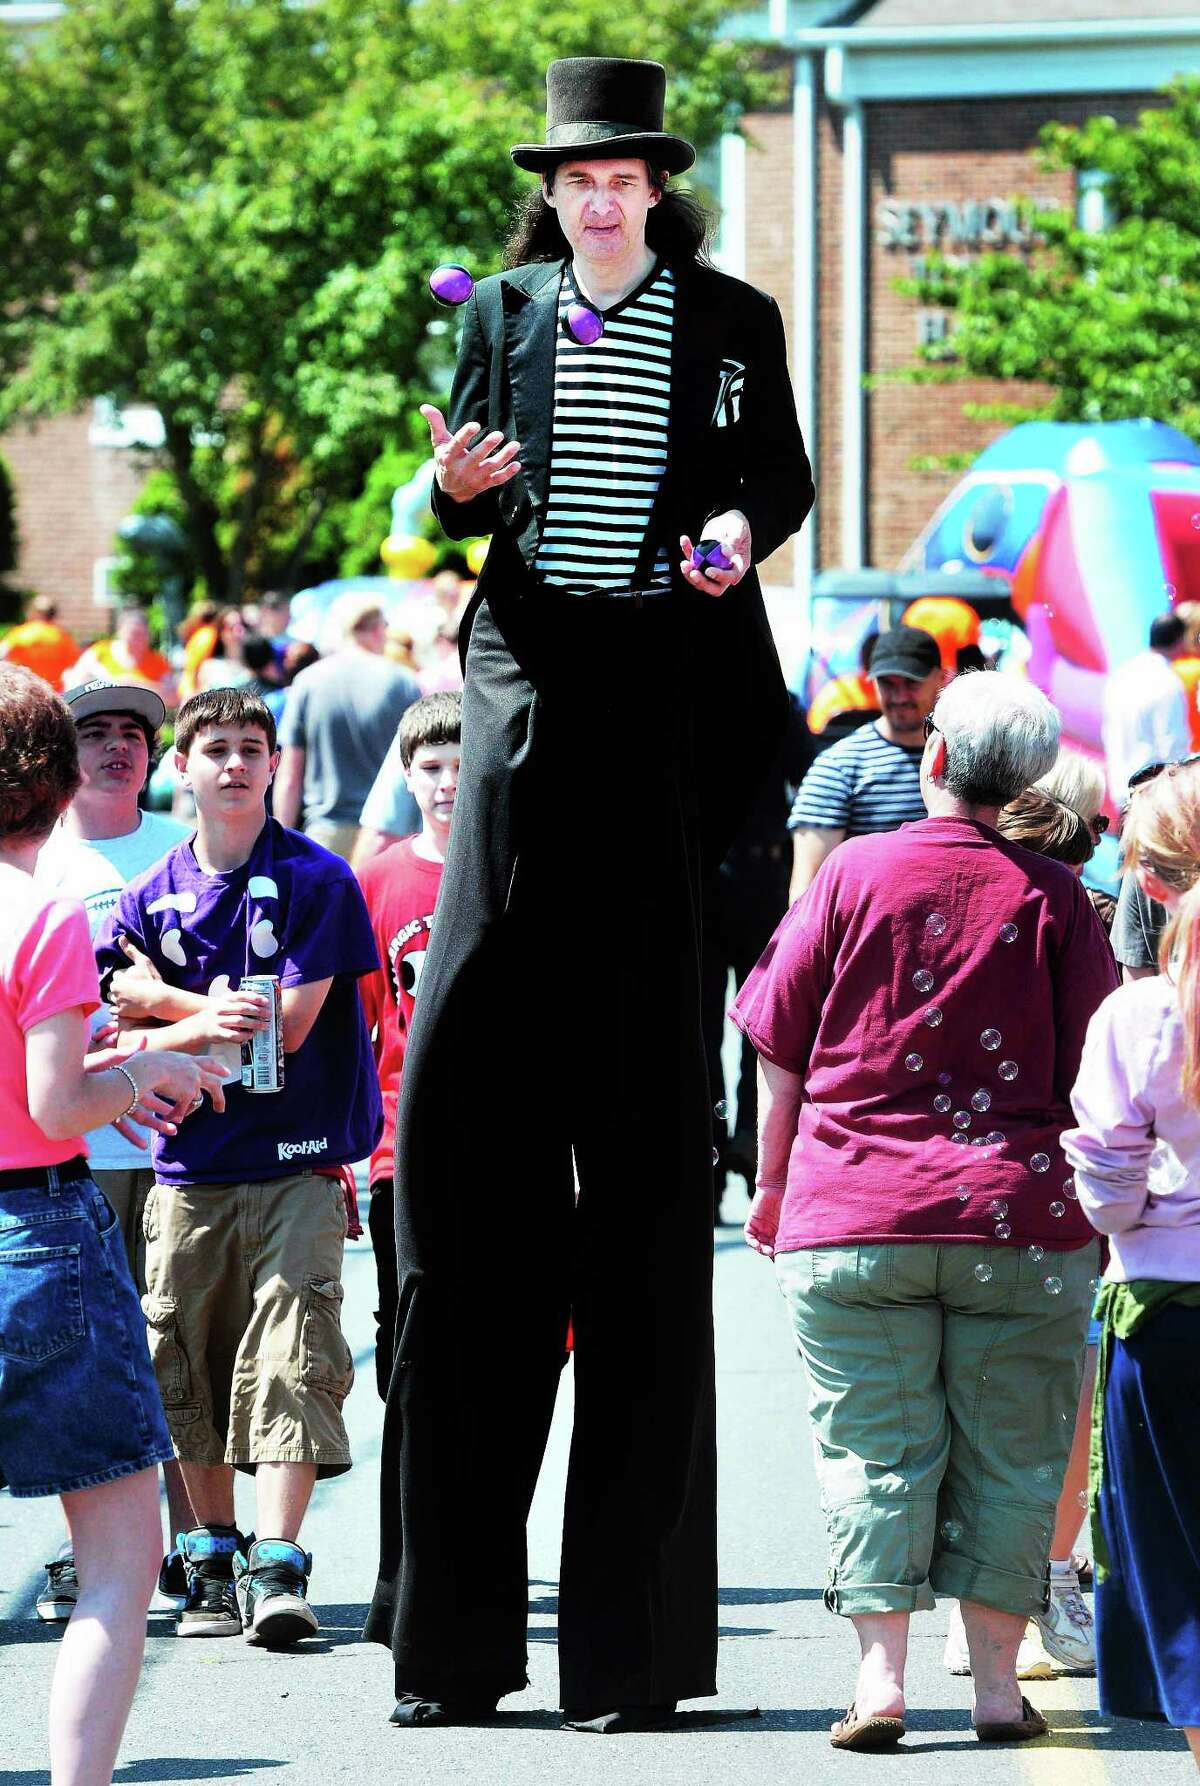 """Arnold Gold — New Haven Register FILE PHOTO Andy """"The Amazing Andy"""" Charney juggles while walking on stilts on First Street during the Seymour Founders' Day 2012 celebration."""